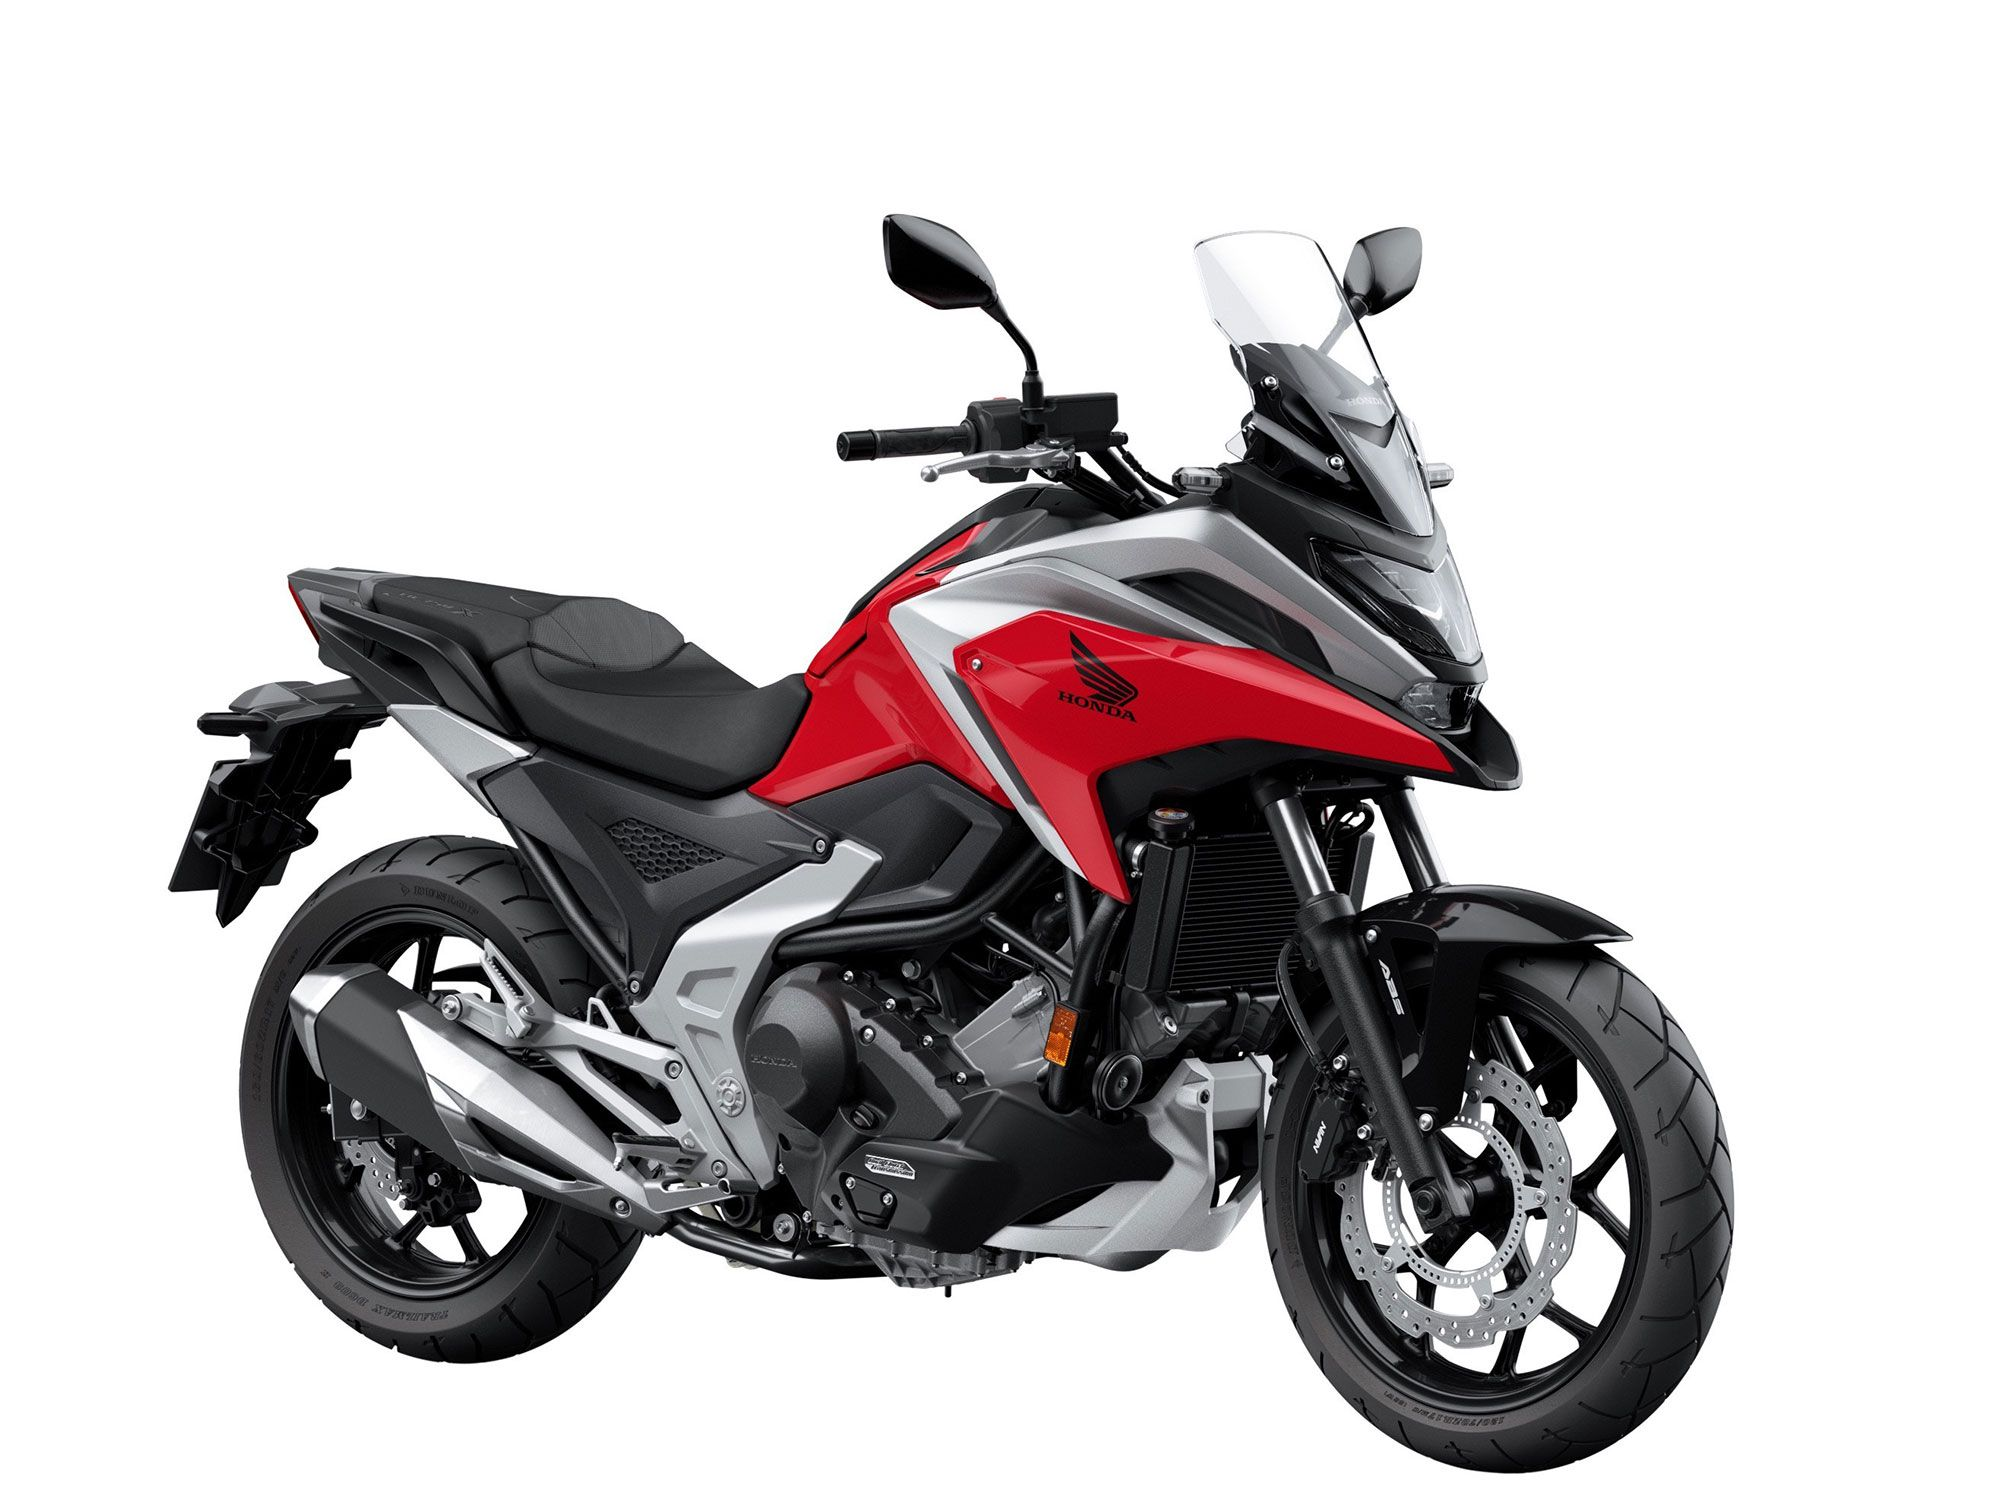 Updates to the NC750X include ride-by-wire, a higher redline, and new engine output settings.